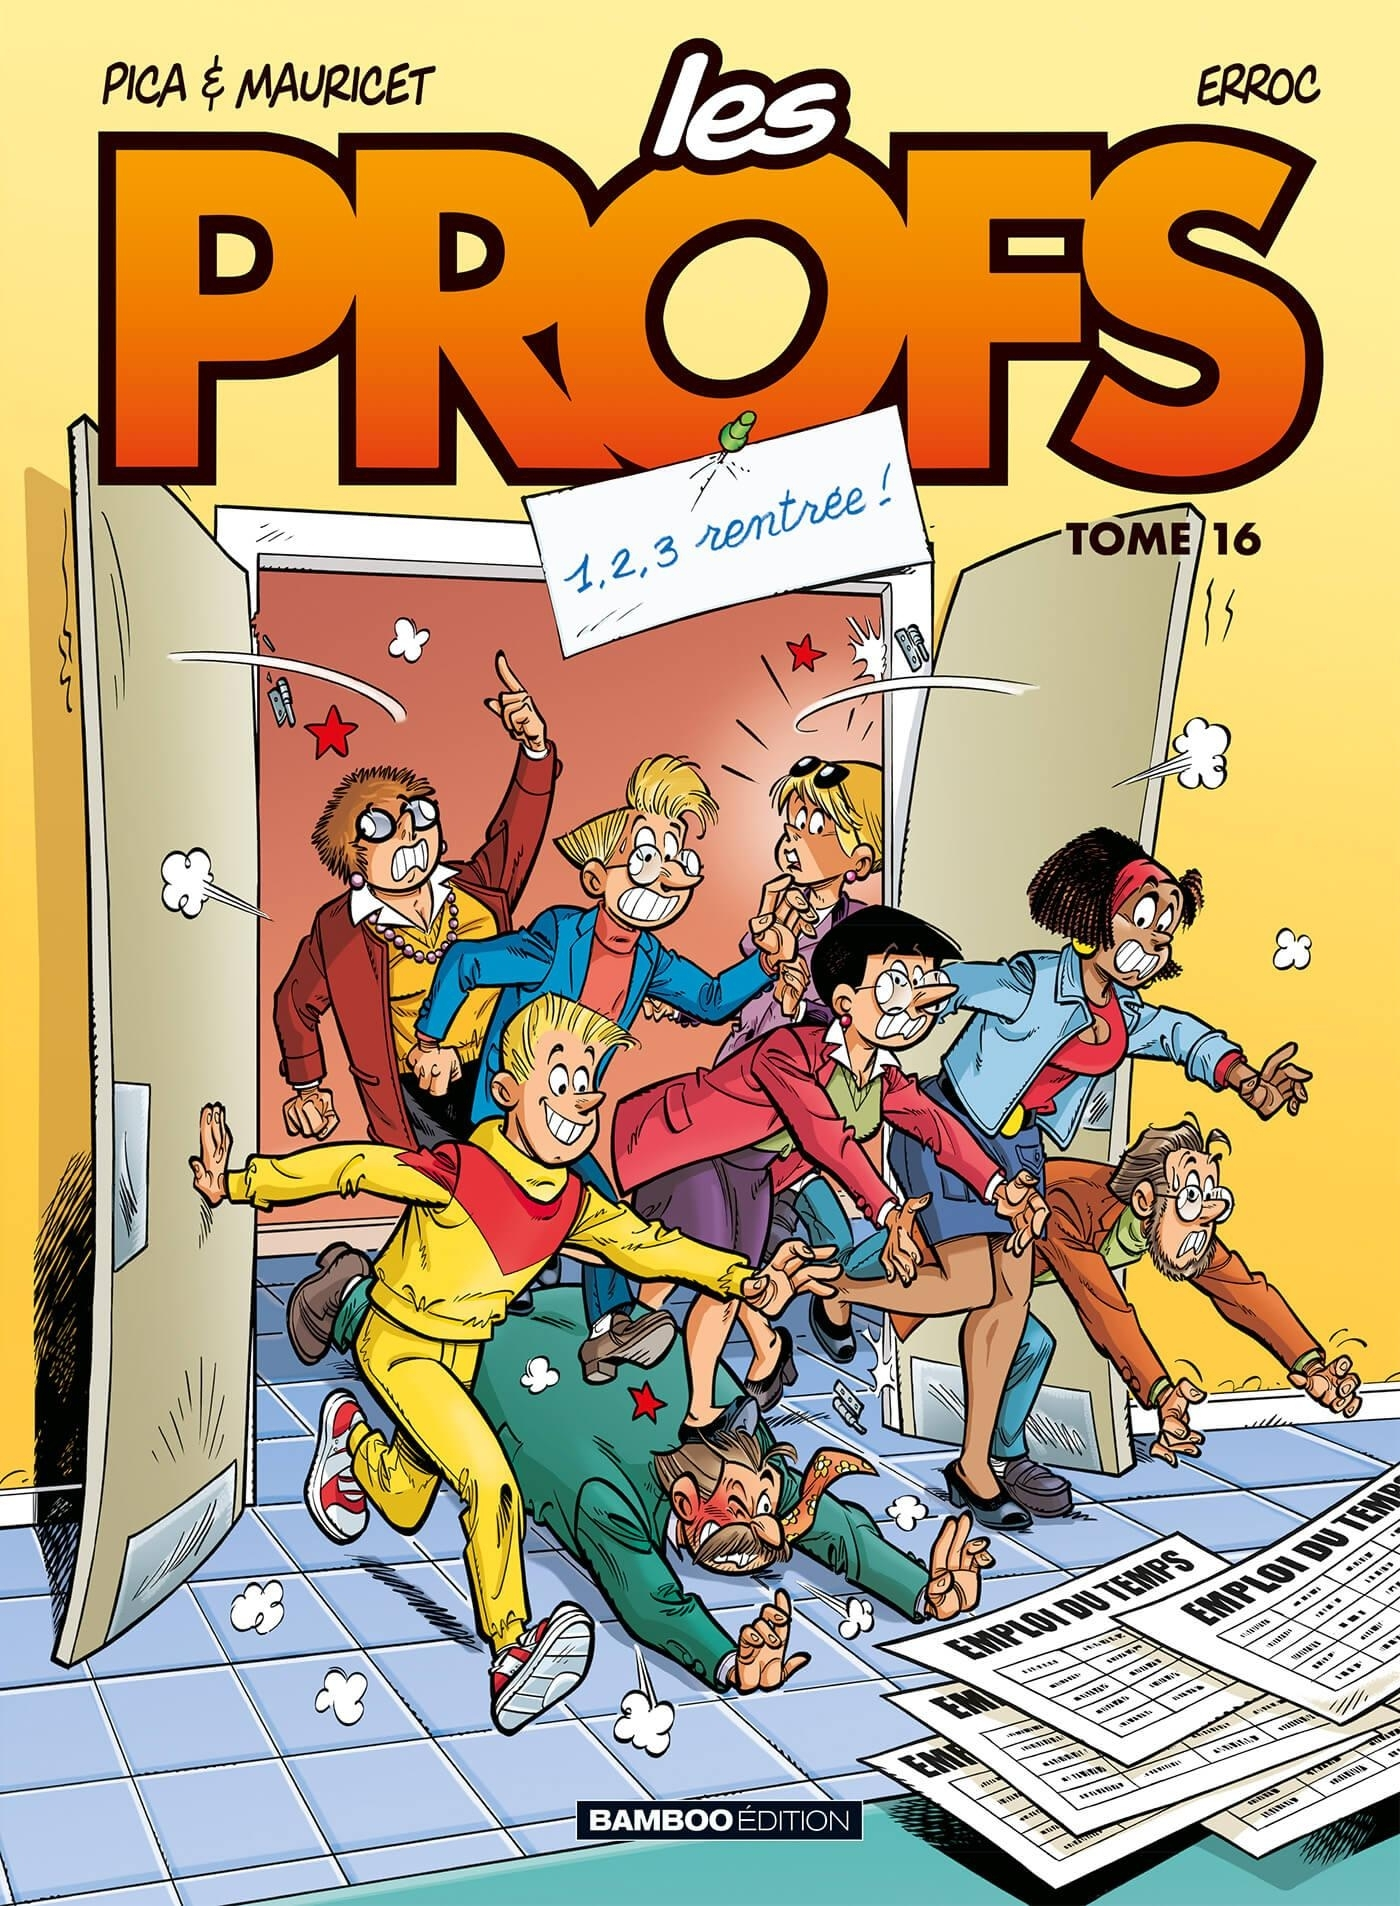 LES PROFS - TOME 16 - 1,2,3 RENTREE !